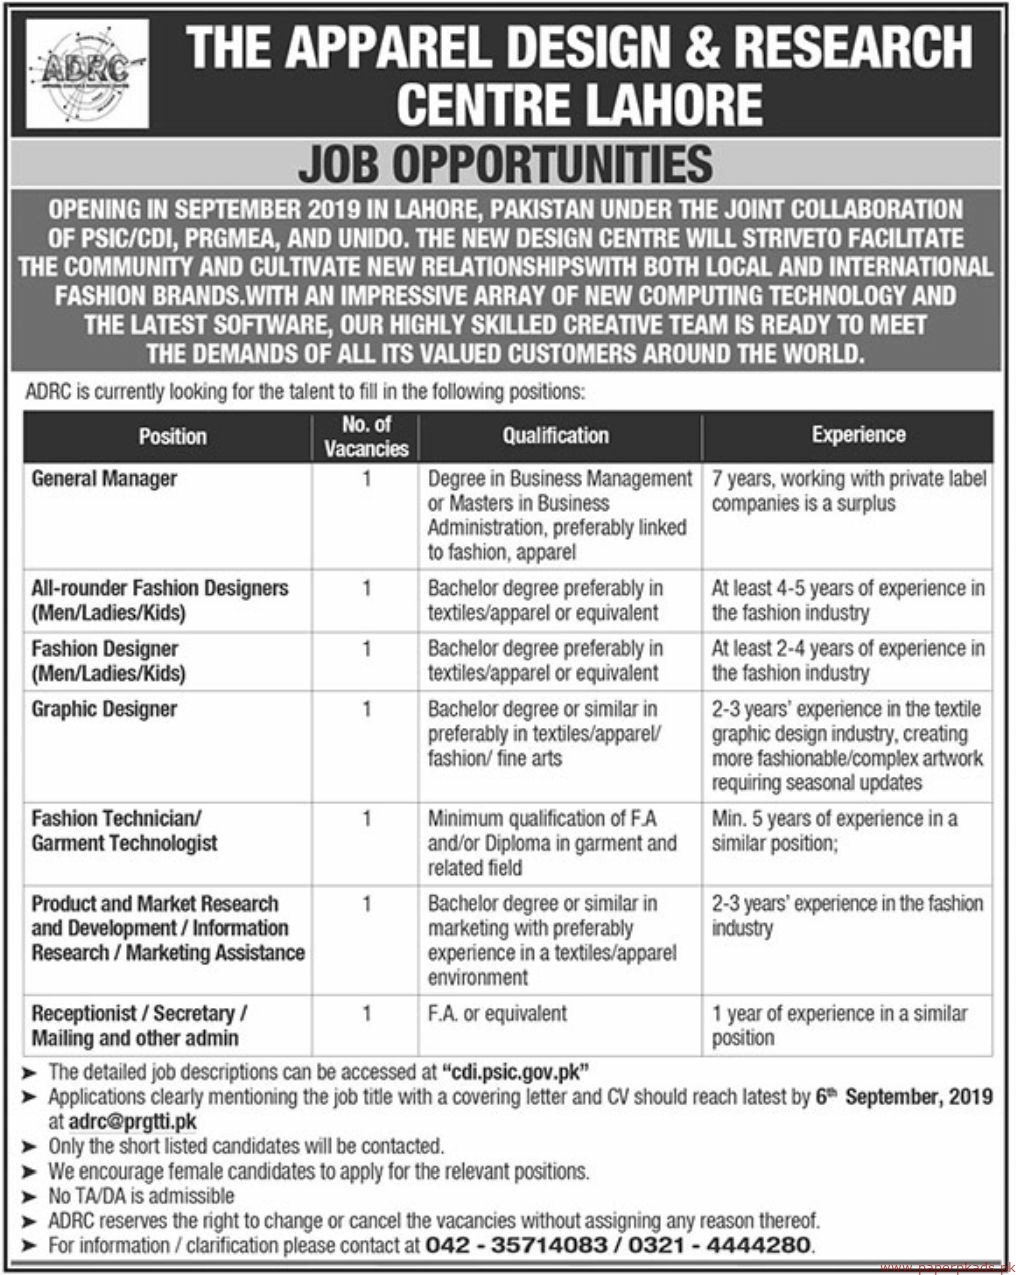 Latest Jobs In The Apparel Design Research Centre Lahore Vulearning Jobs